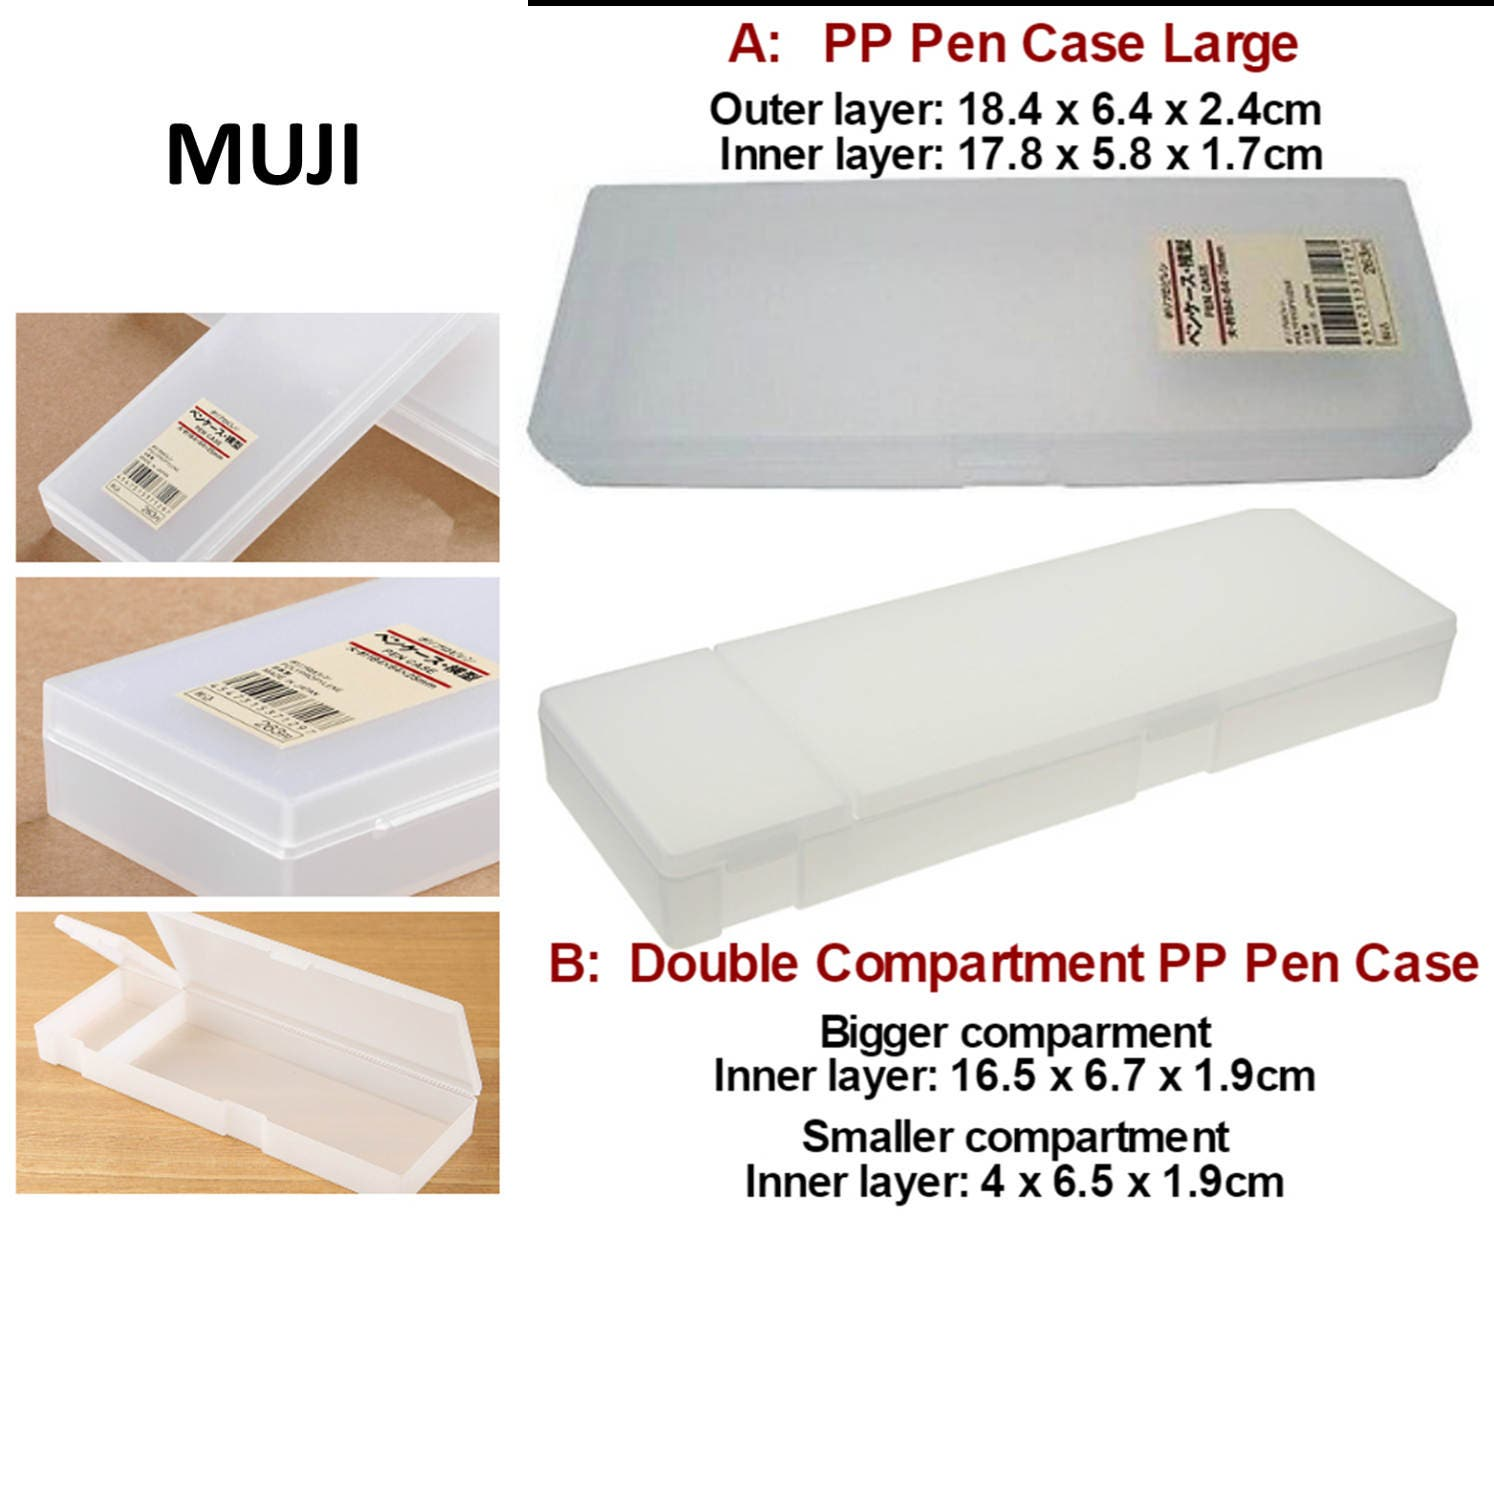 MUJI PP Pen Case: Large or Double Compartments